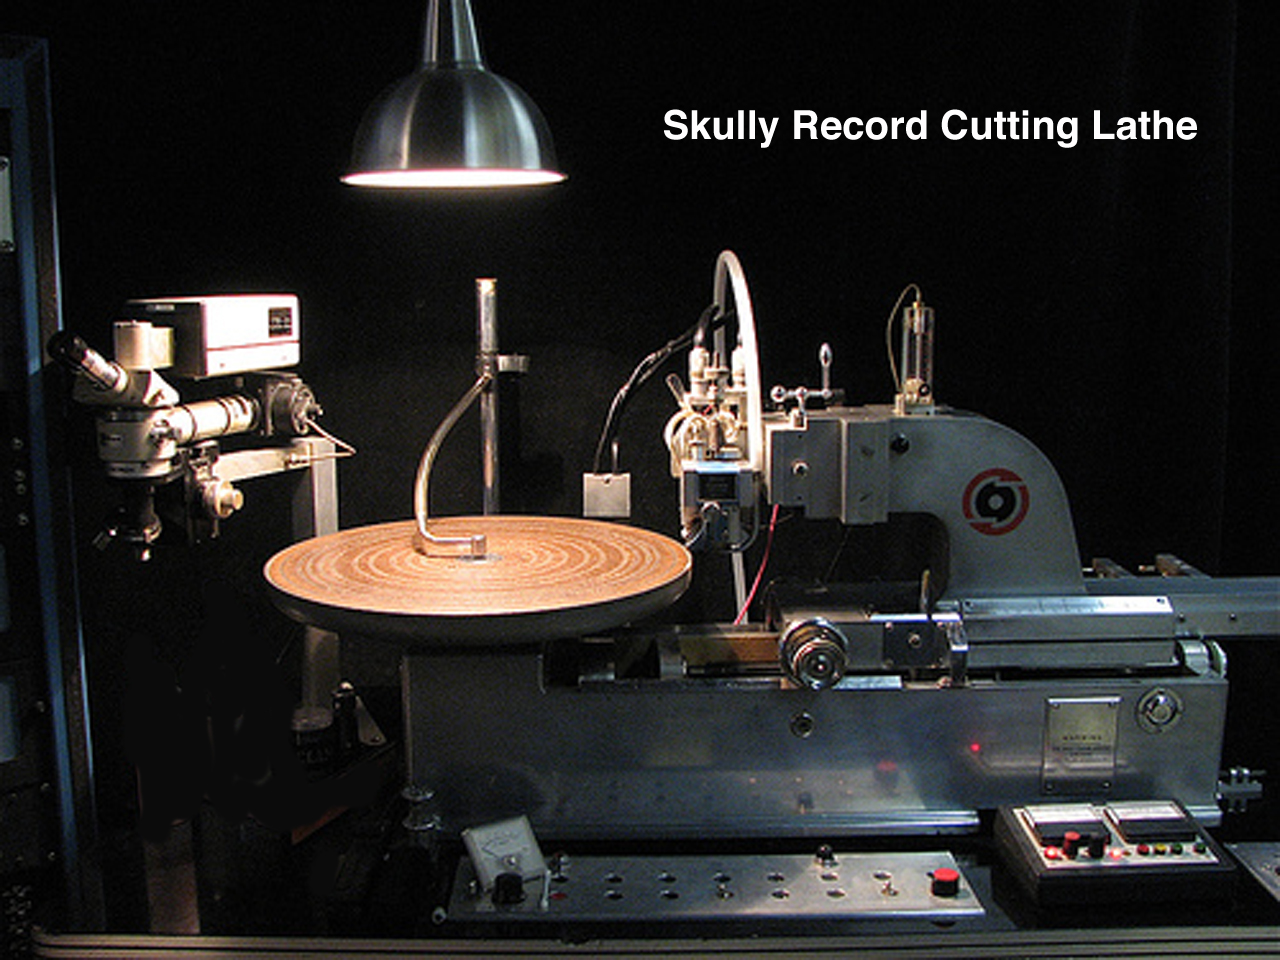 Scully lathe in the Reel2ReelTexas.com vintage reel tape recorder recording collection